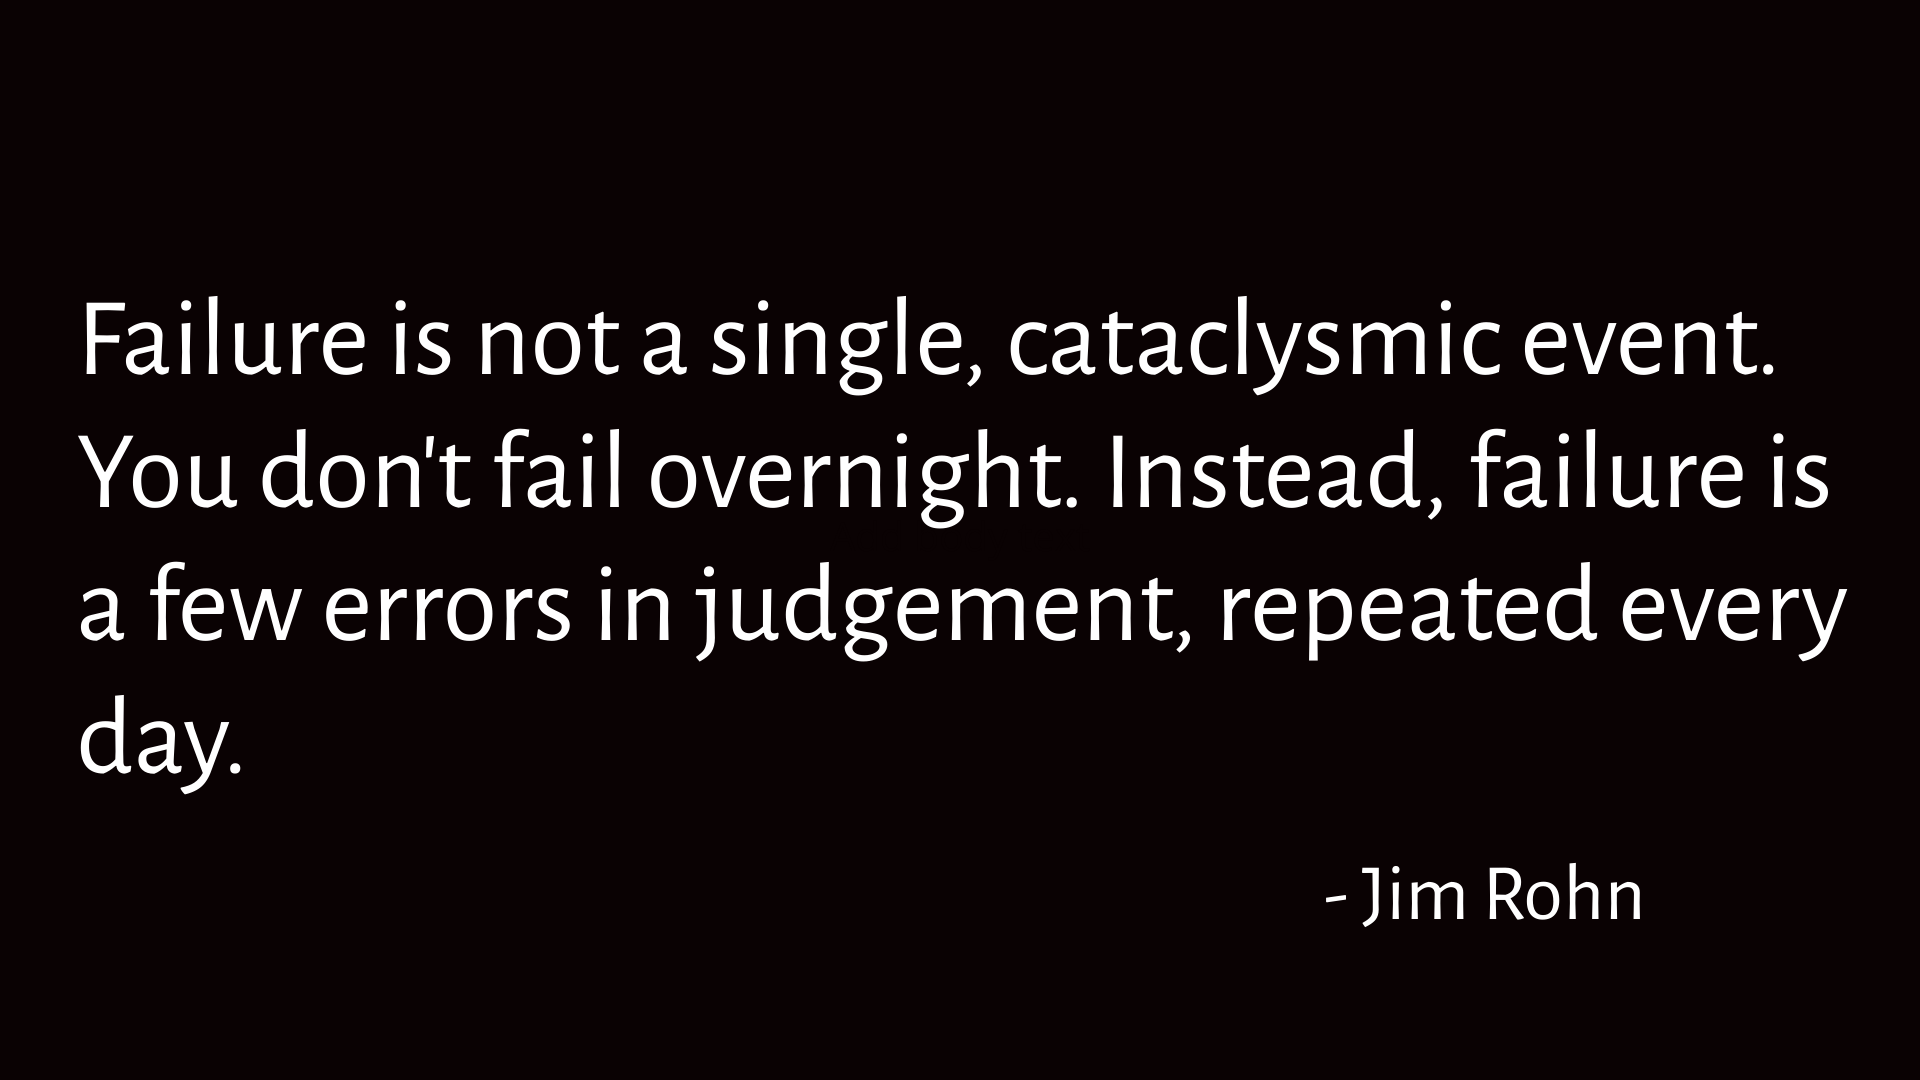 Failure is not a single, cataclysmic event. You don't fail overnight. Instead, failure is a few errors in judgement, repeated every day. —]im Rohn https://inspirational.ly